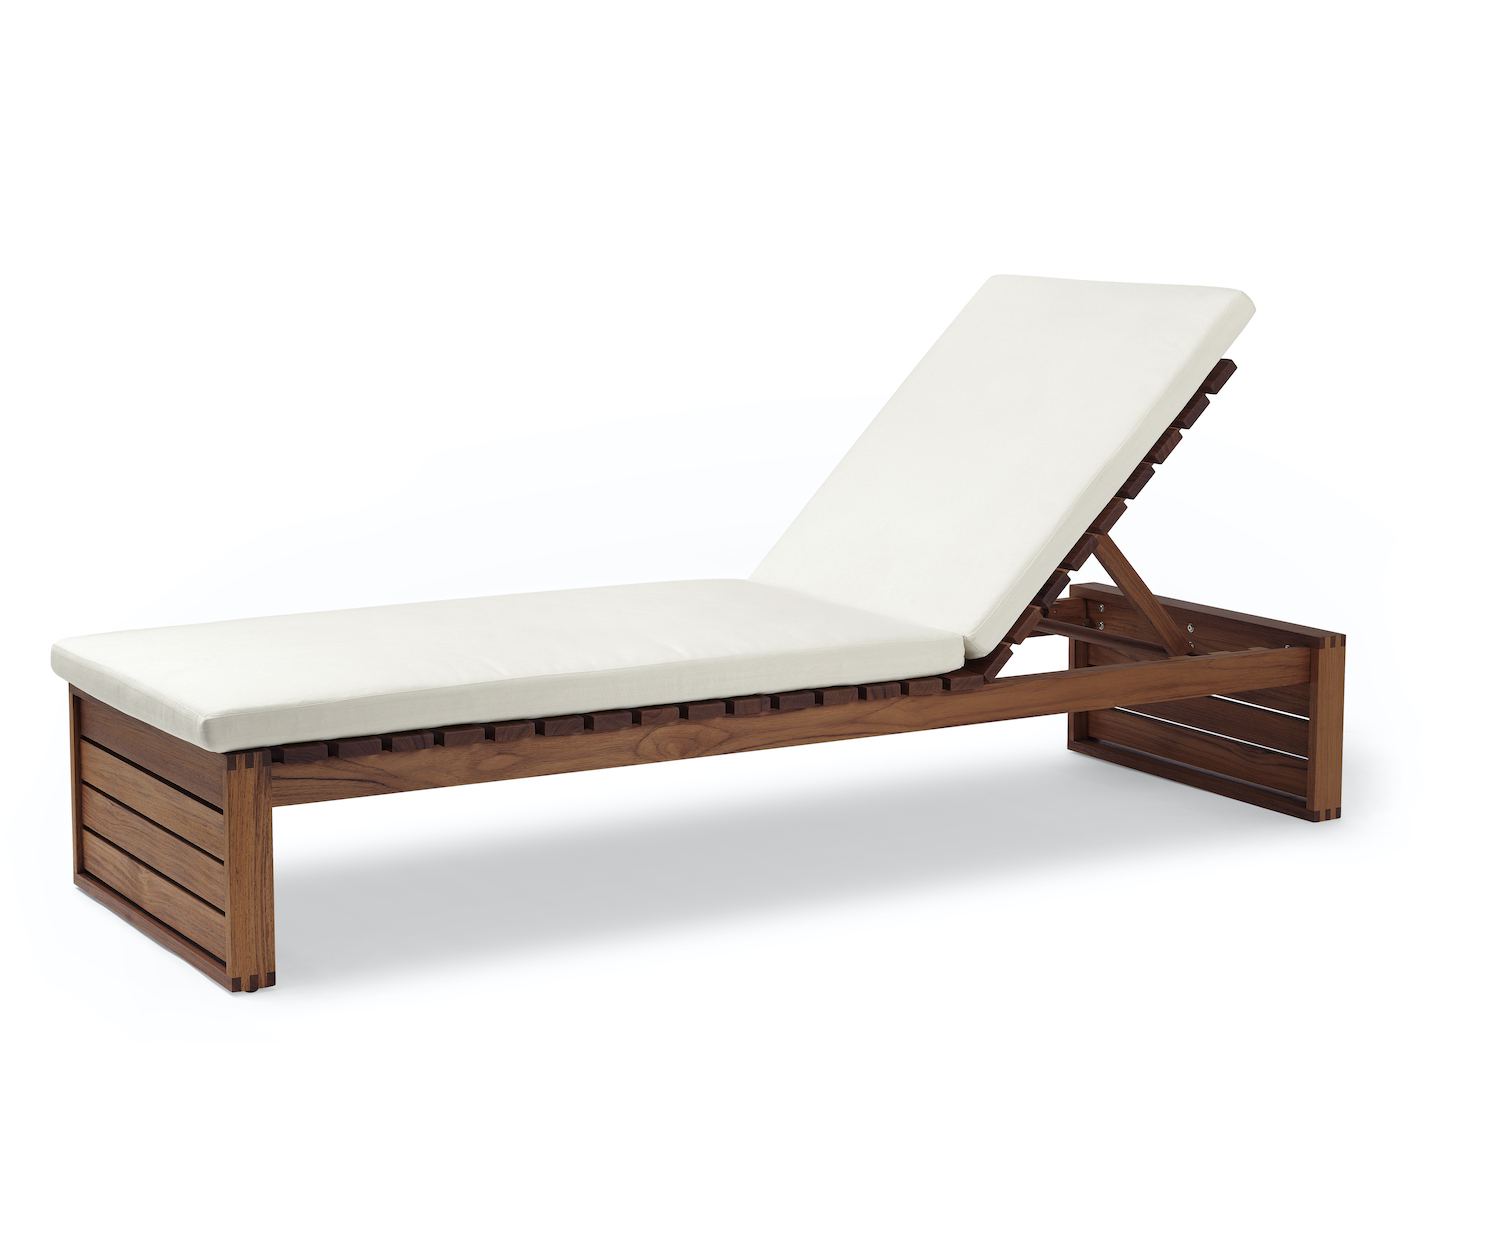 Product Image BK14 Sunlounger | CH OUTDOOR